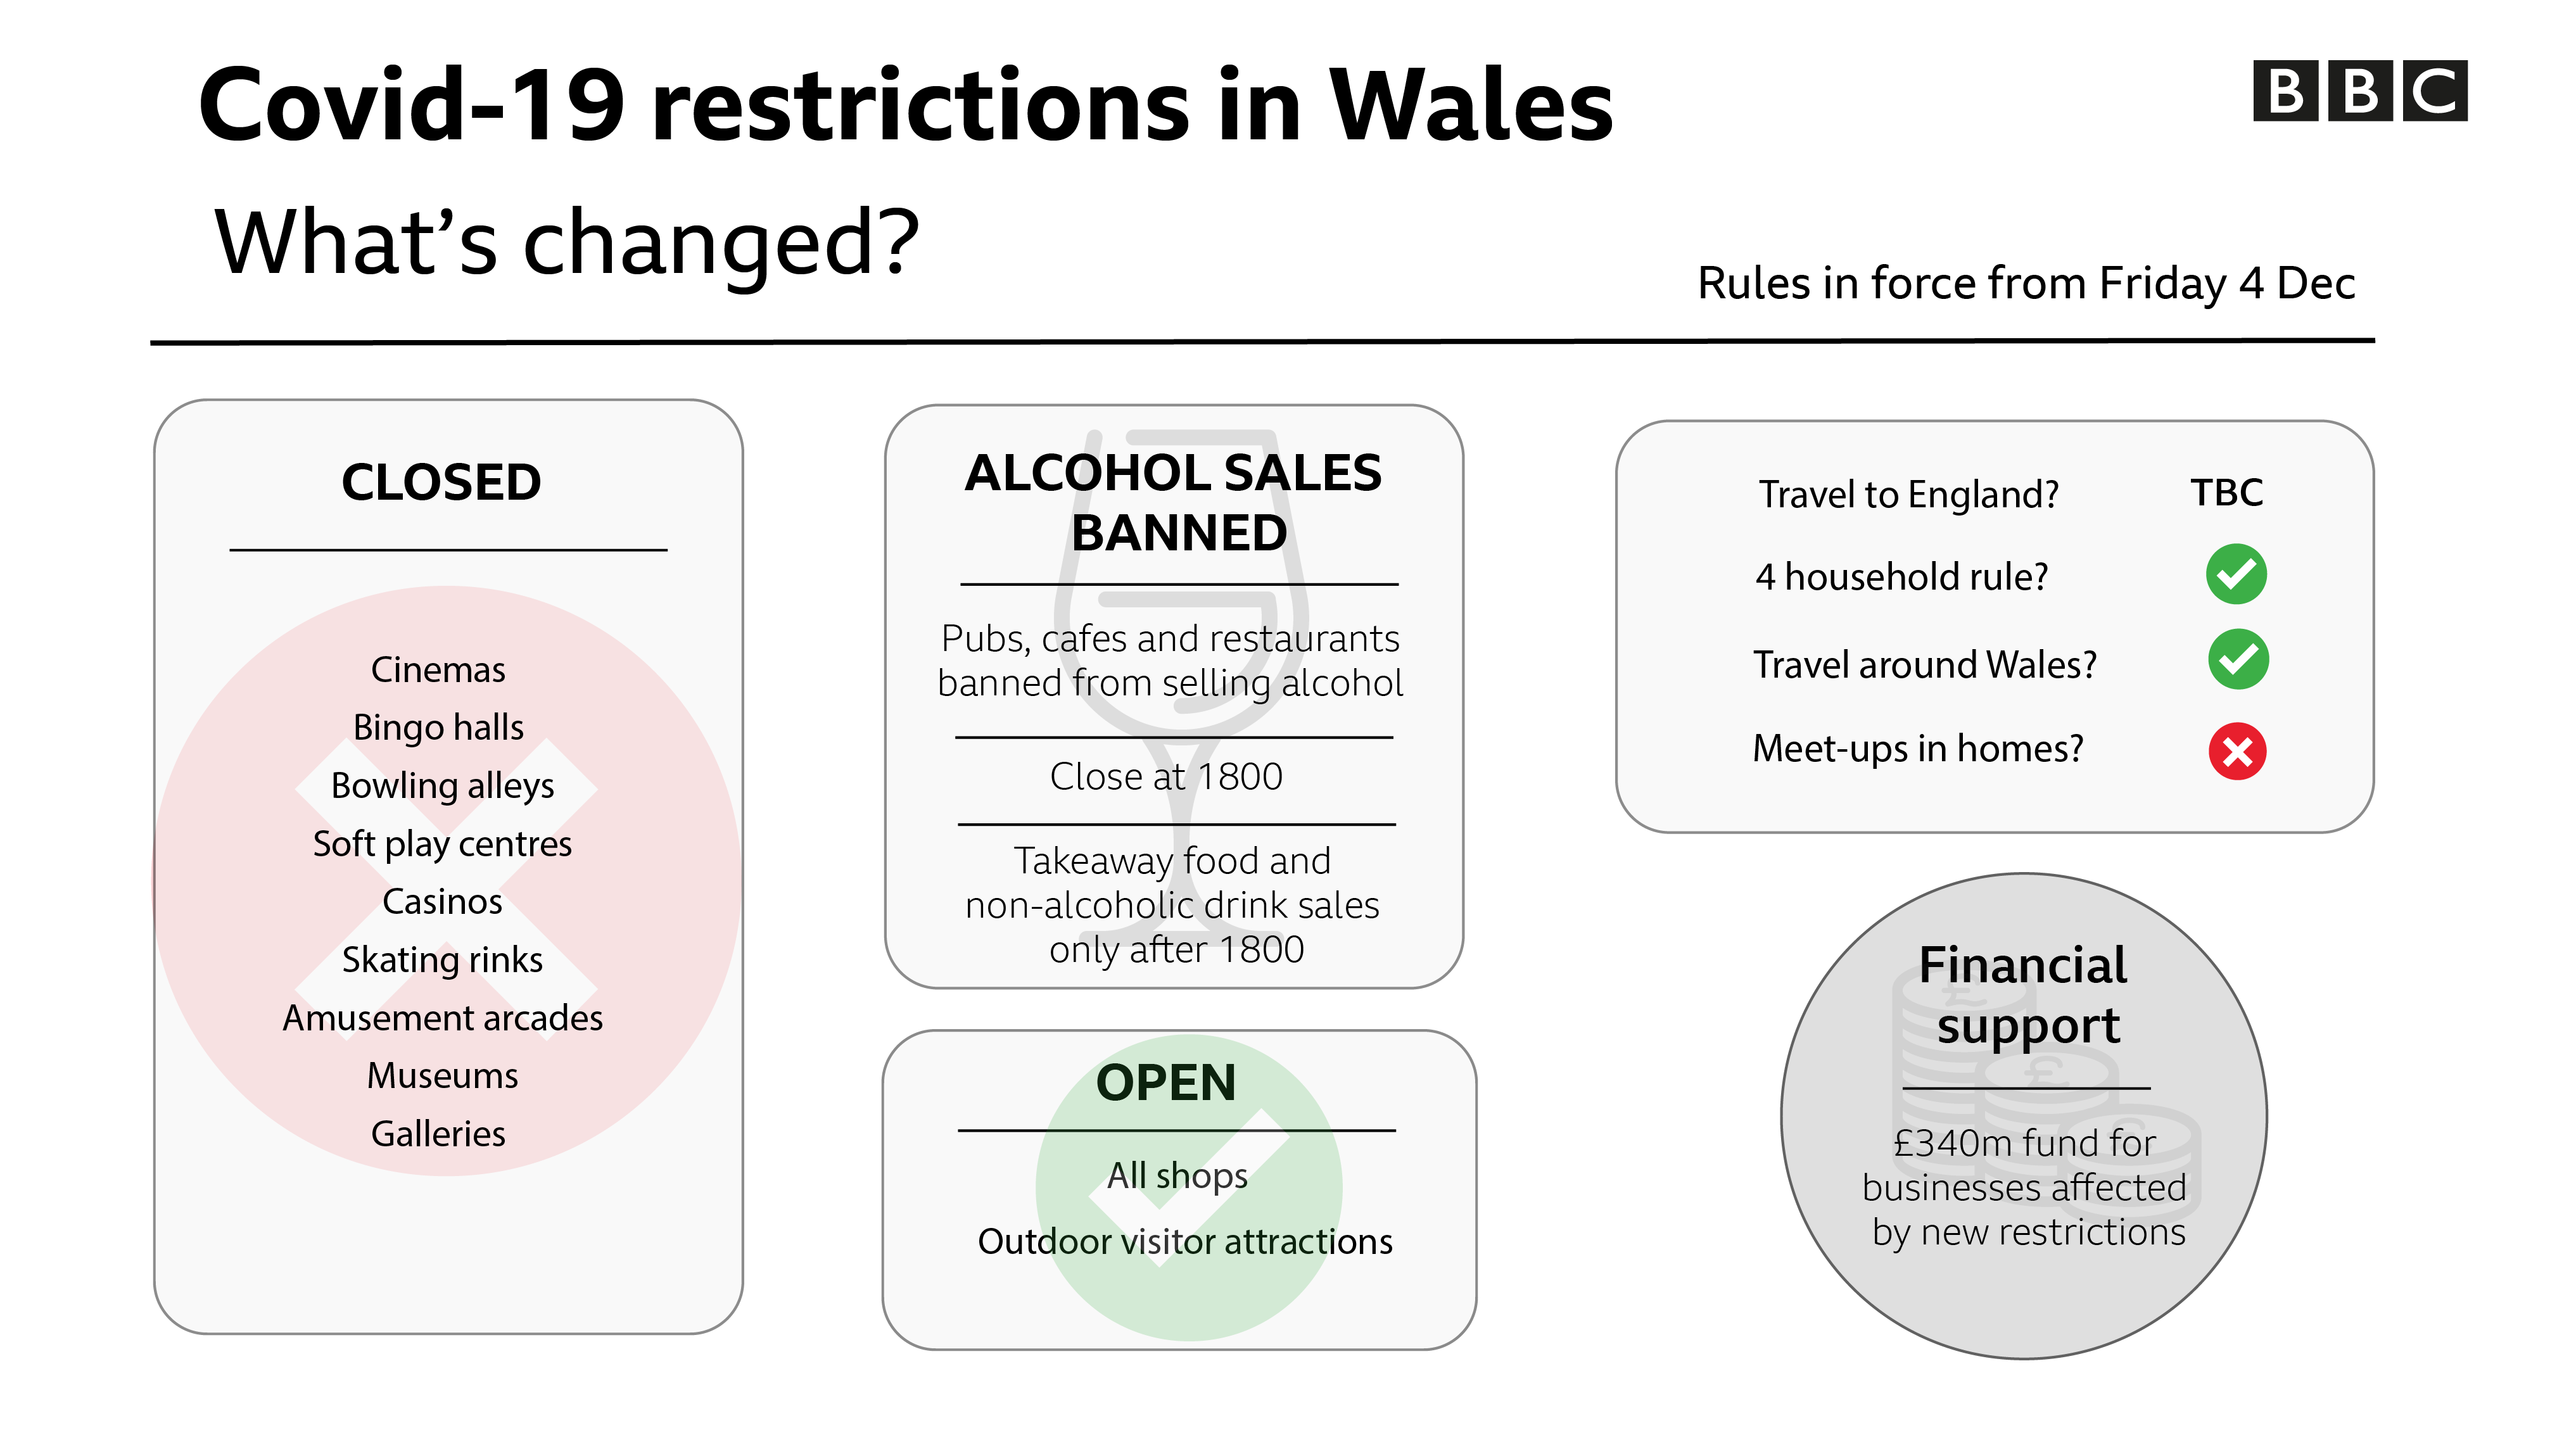 Covid-19 restrictions in Wales